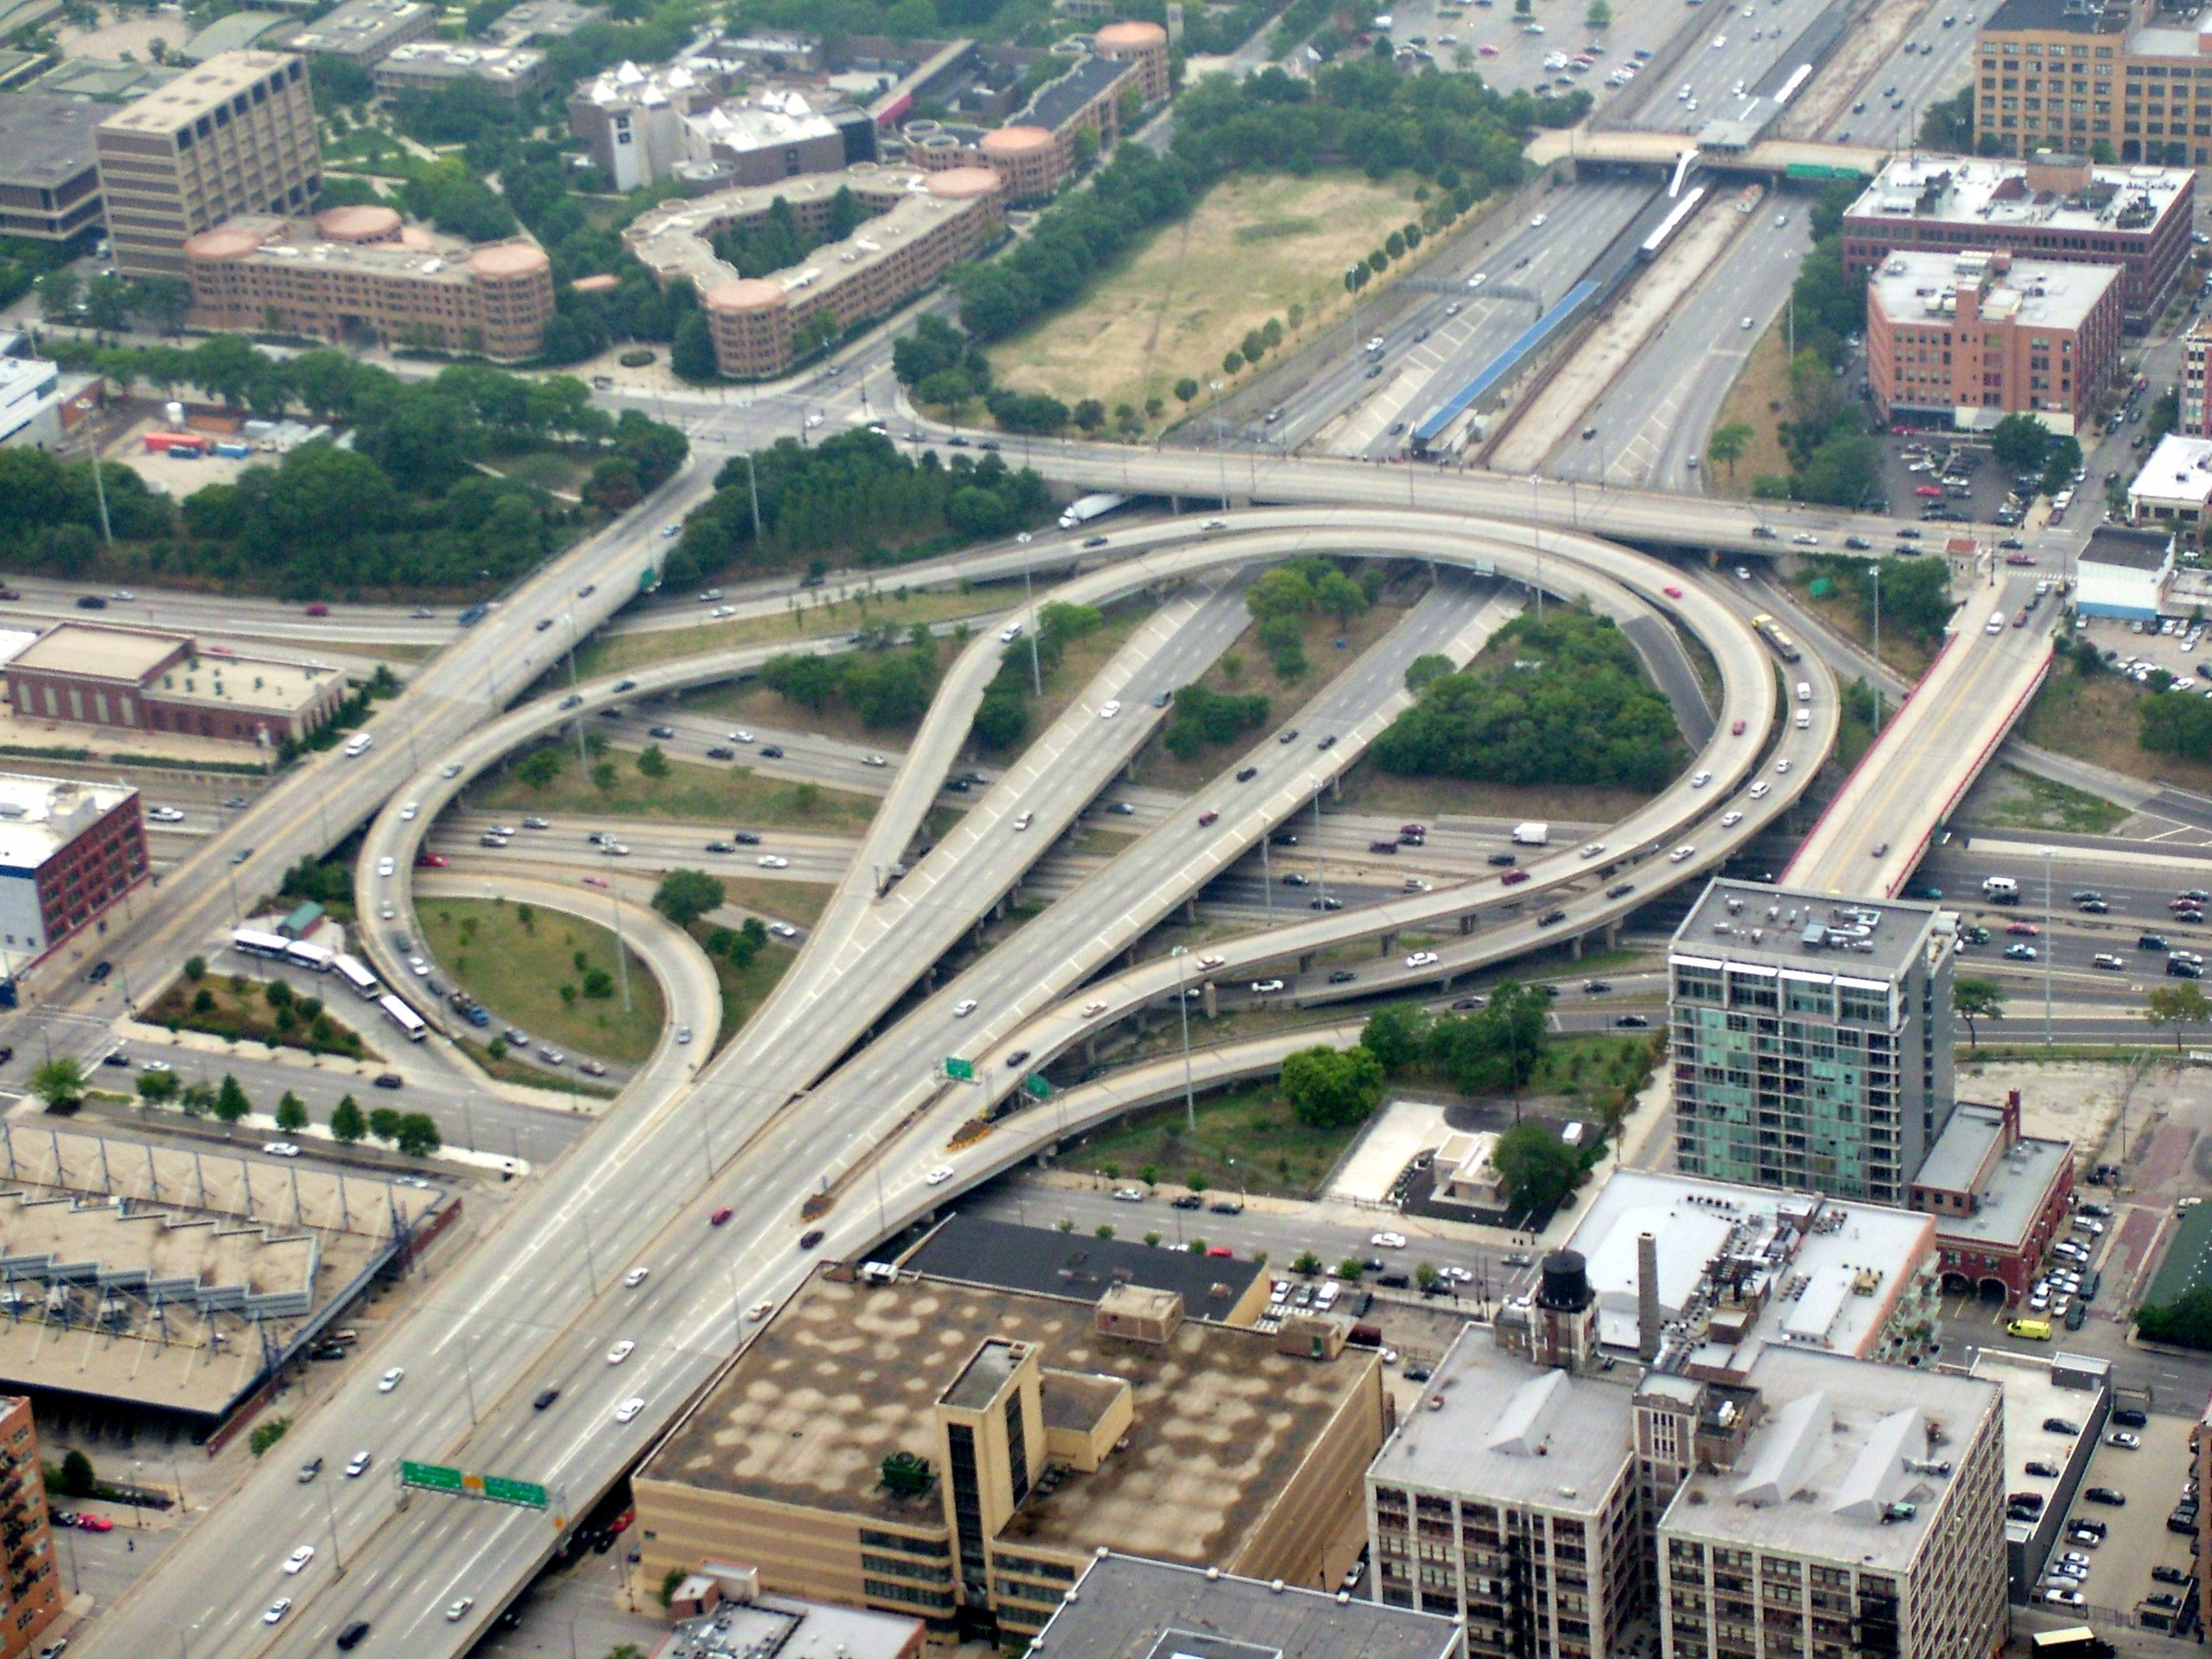 Overhead photo of the Circle Interchange in Chicago.